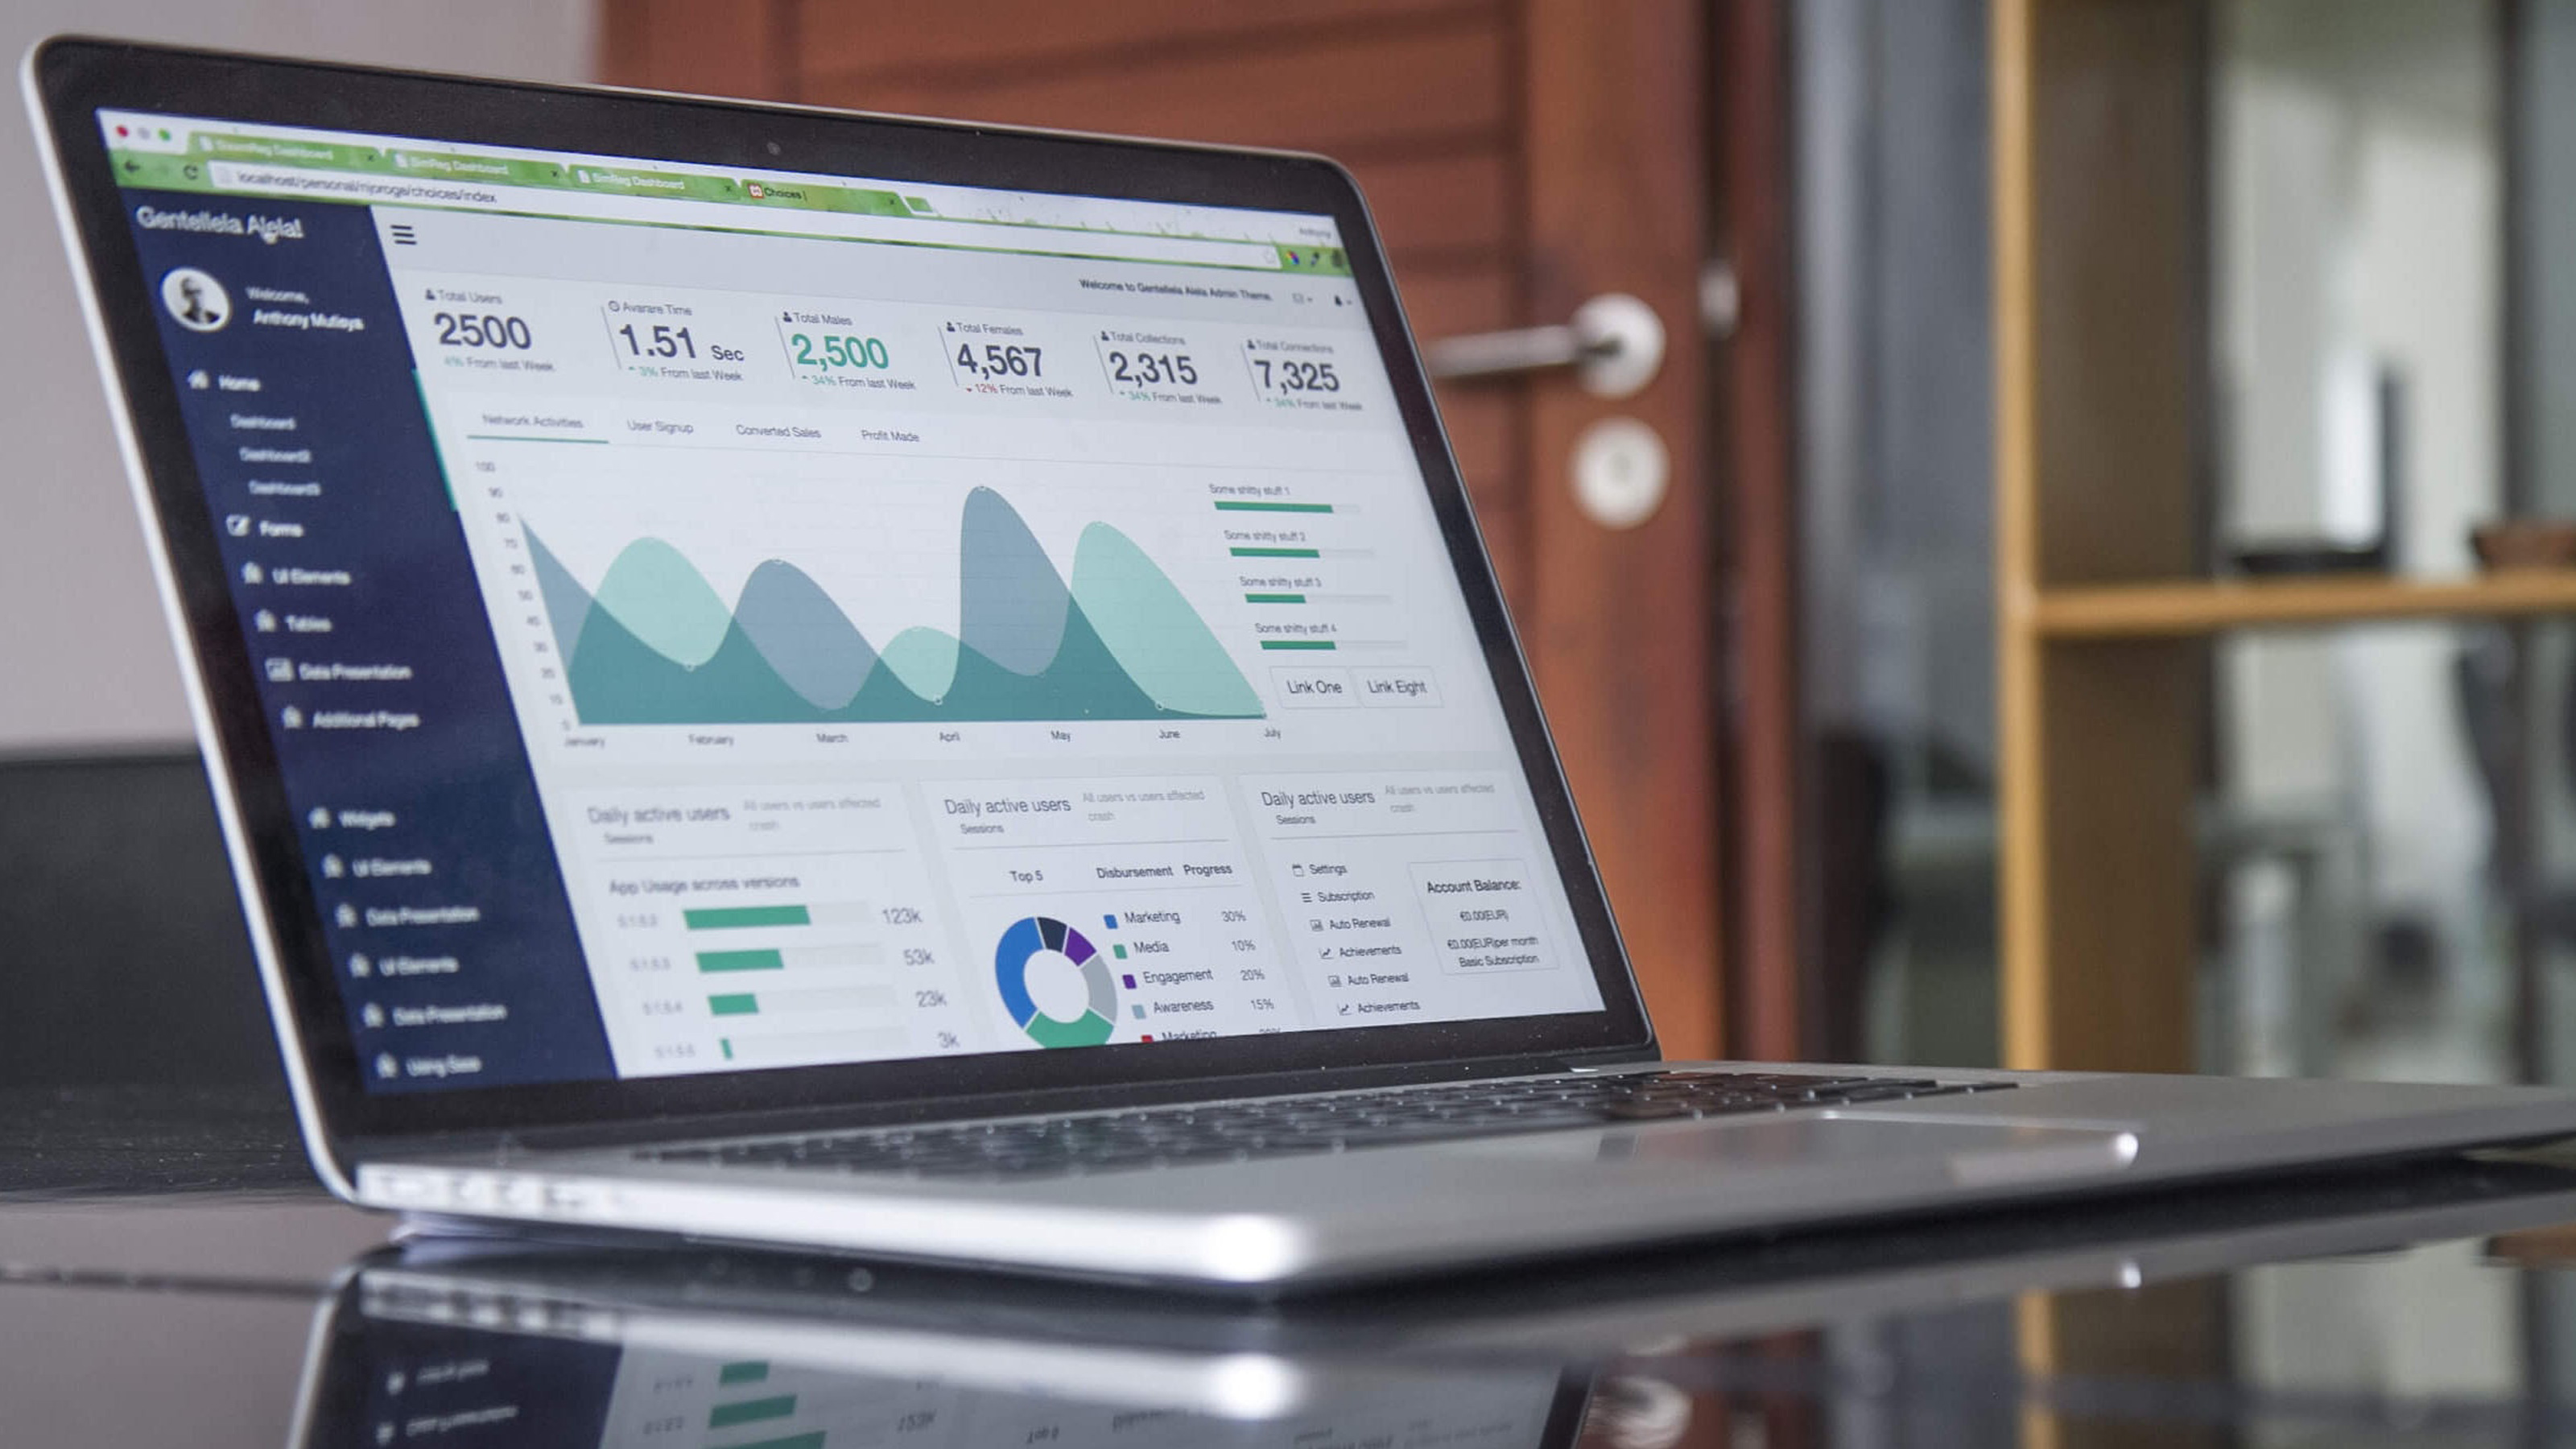 open laptop with green and clue charts of website analytics